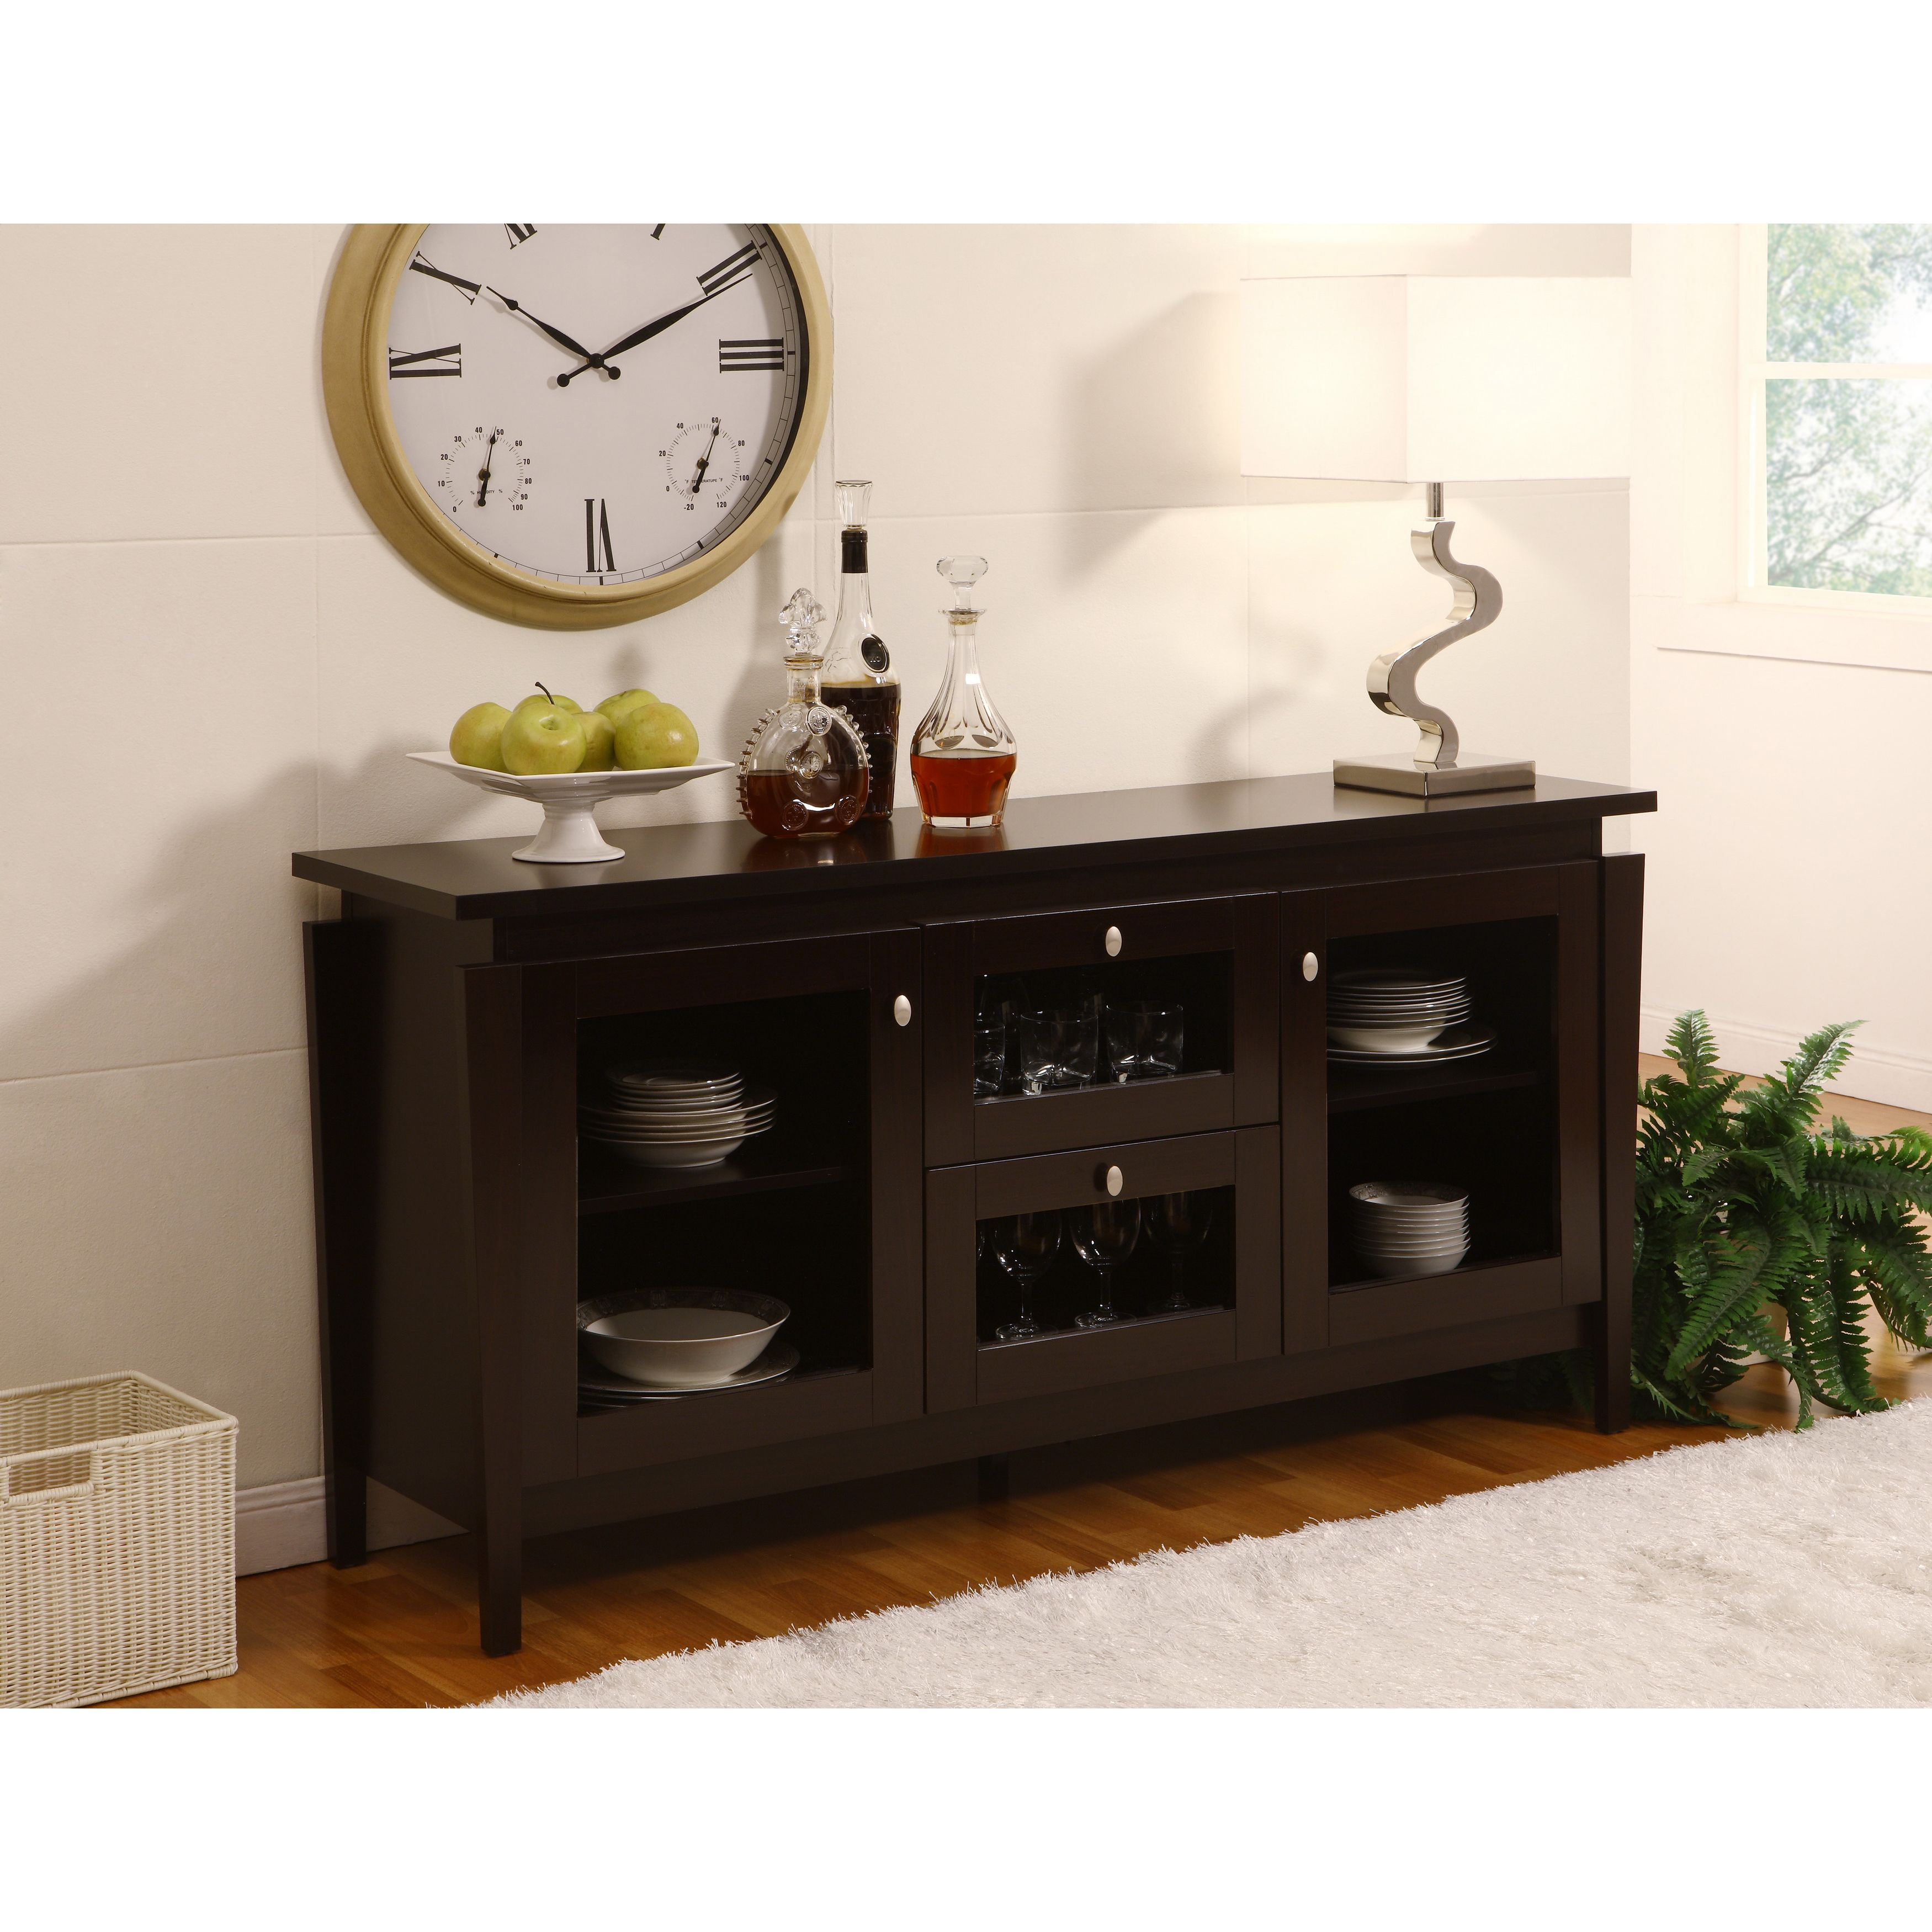 Charmant Give Your Dining Room More Space And Storage With This Contemporary Buffet  Cabinet. Featuring Four Cabinets With Glass Doors And An Elevated Top  Panel, ...